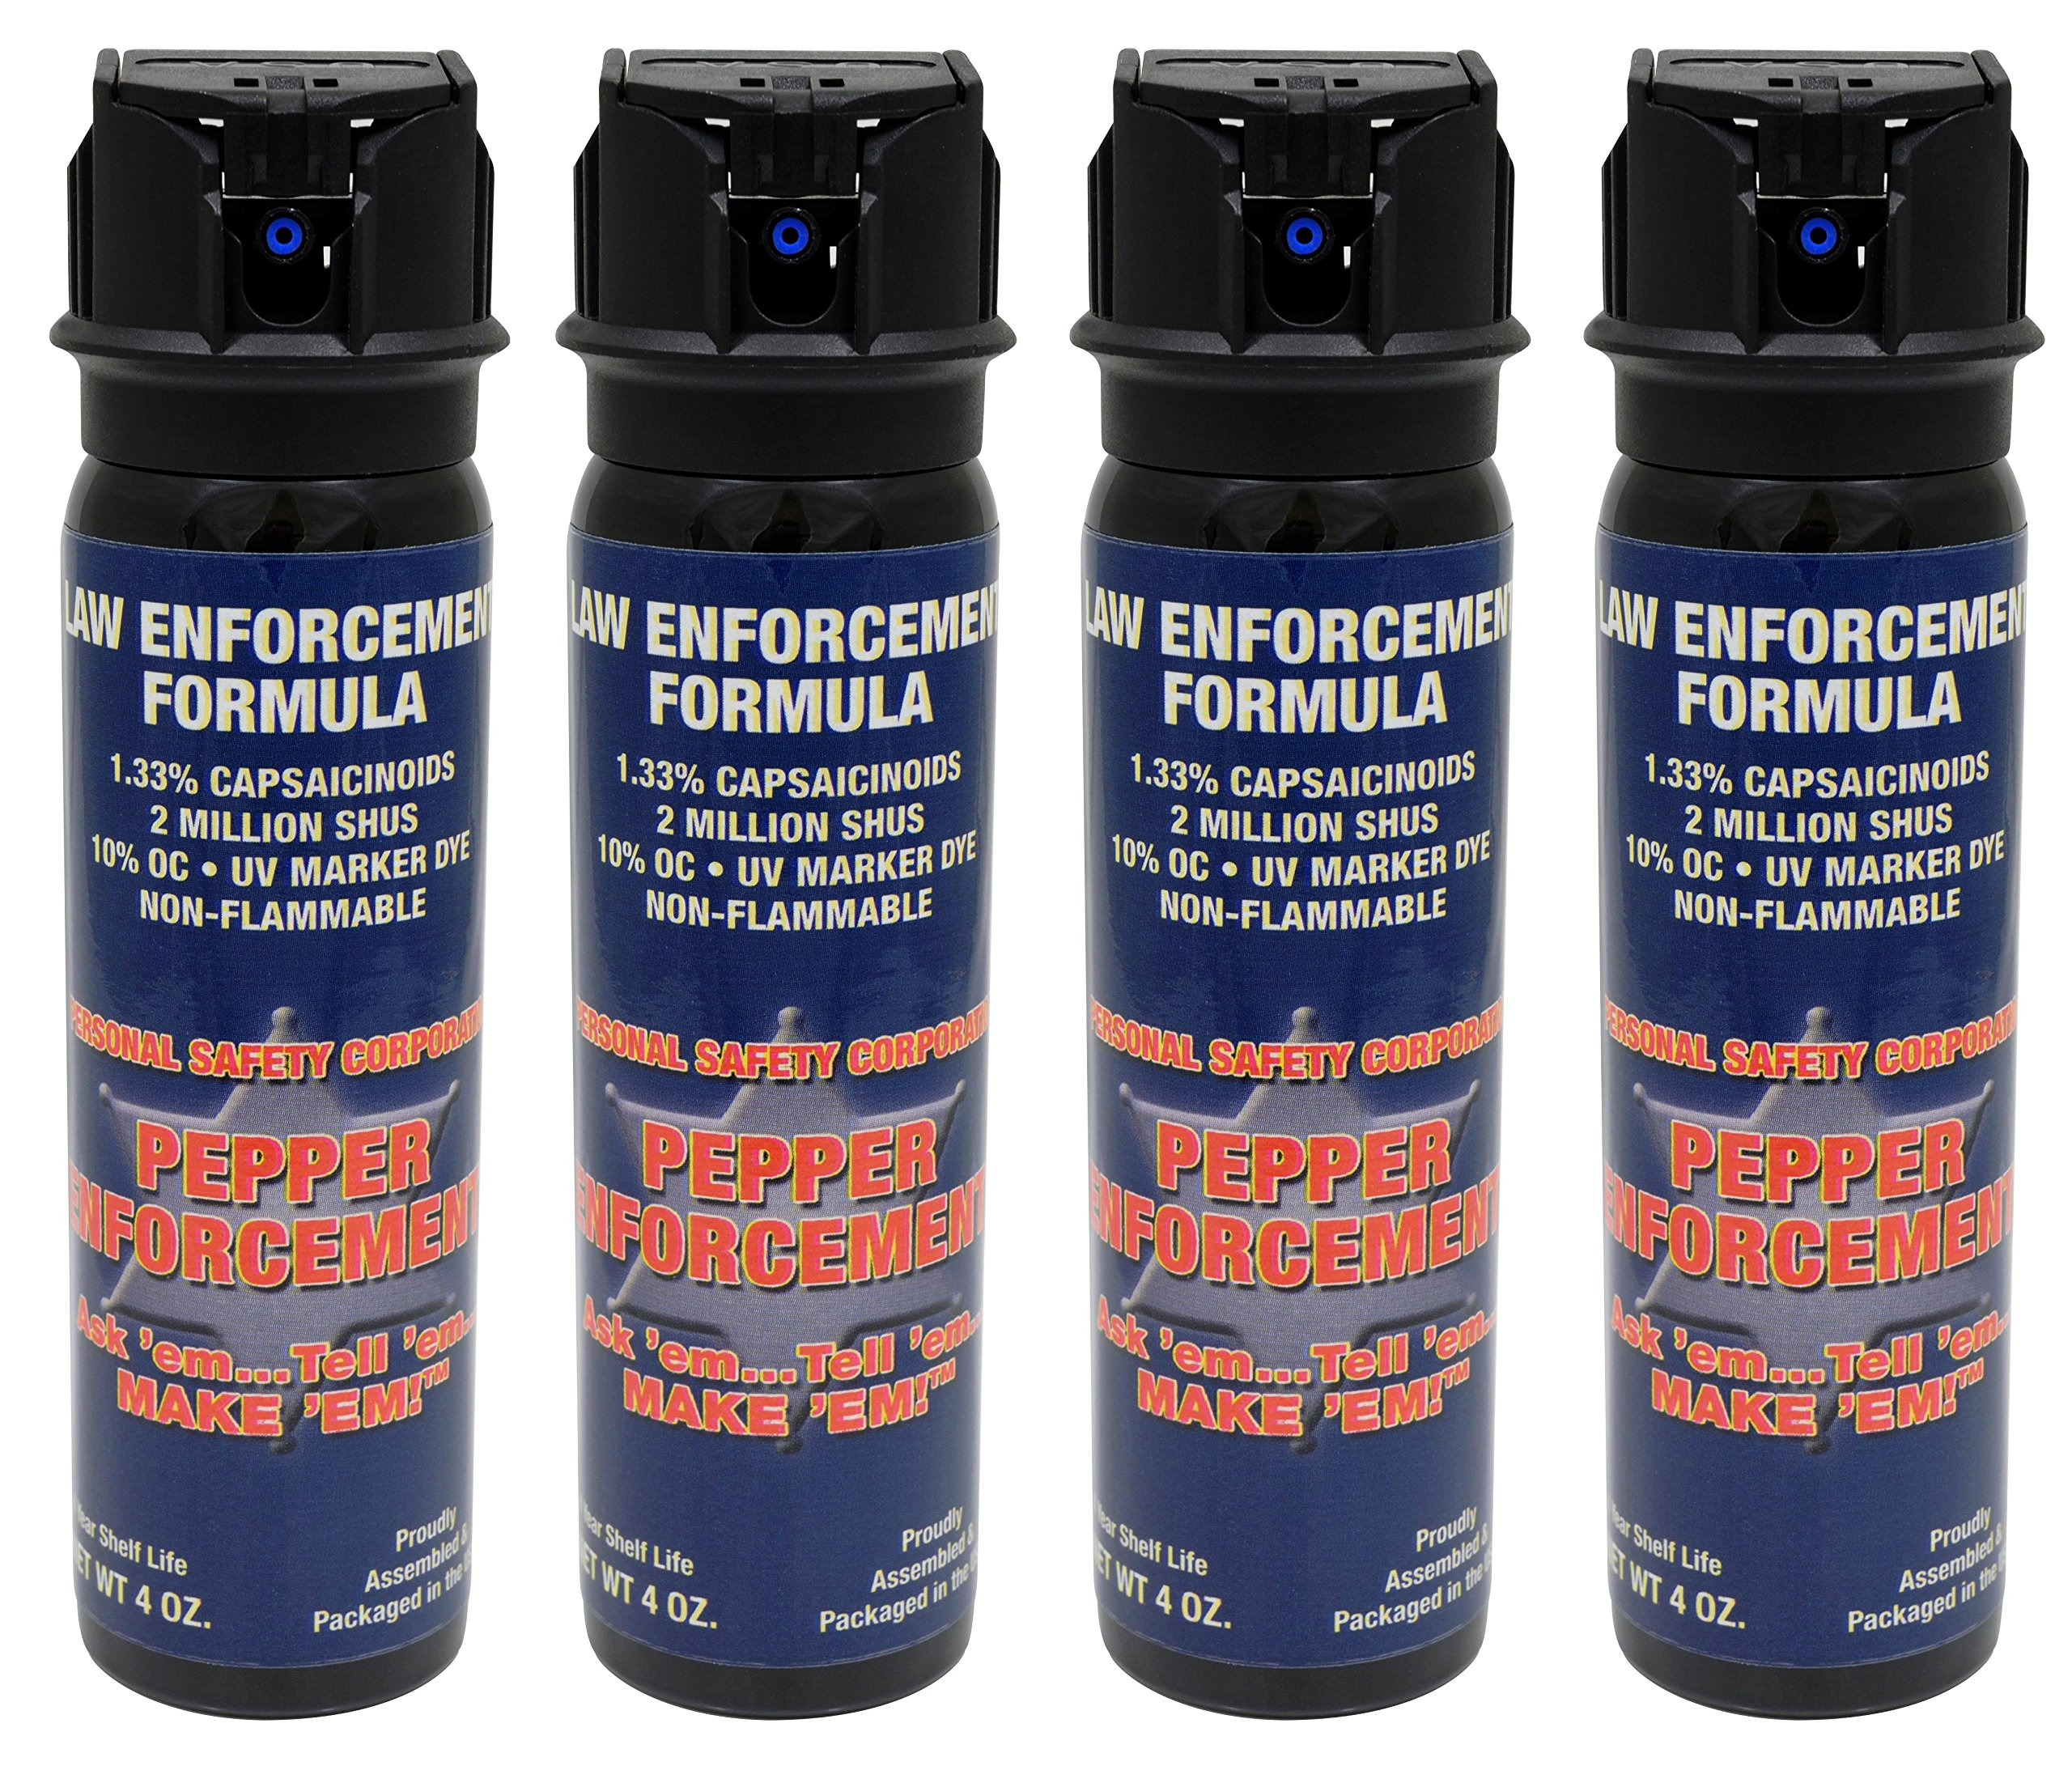 Pepper Enforcement (Pack of 4 4 oz. Splatter Stream Police Strength 10% OC Flip Top Spray - Professional Grade Emergency Self Defense Non Lethal Weapon for Personal Protection and Safety by Pepper Enforcement